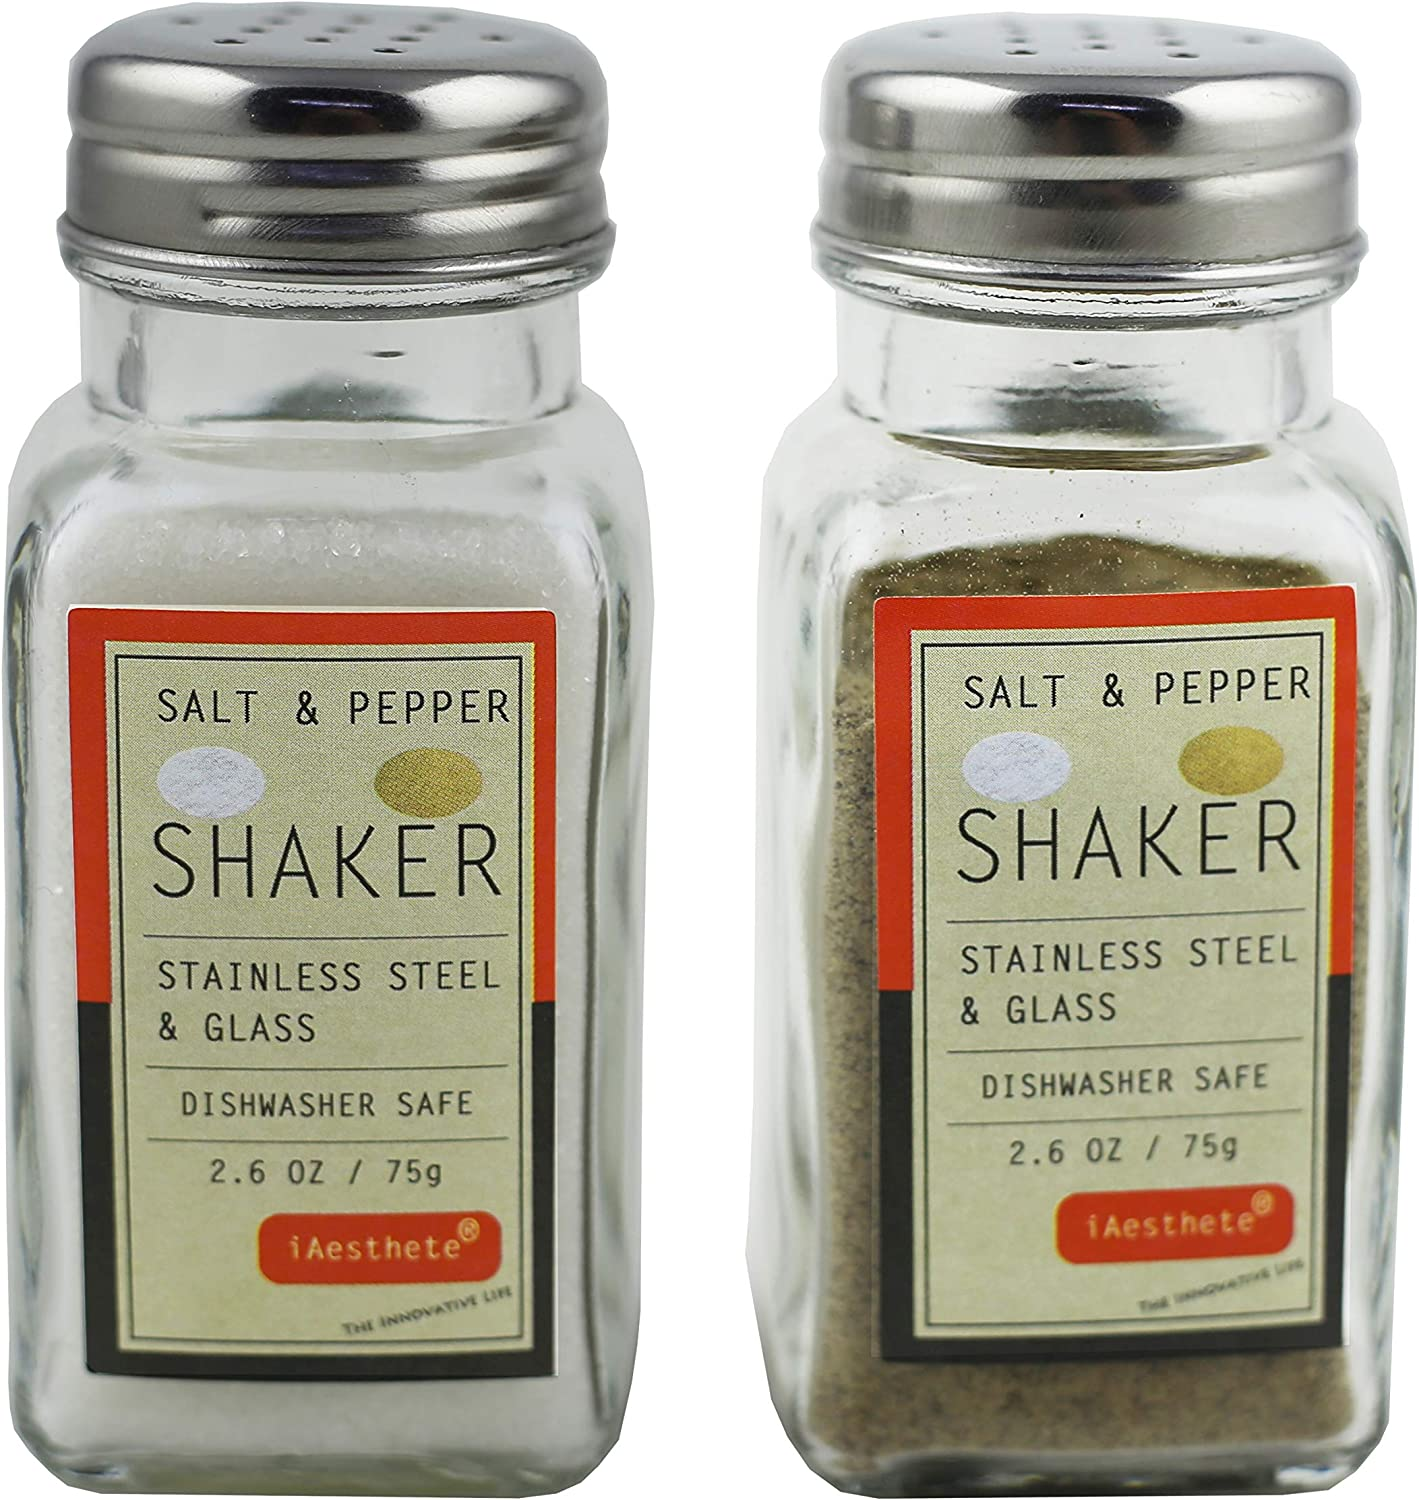 2 Pack - Salt and Pepper Shakers, Glass Bottle With Food Grade Stainless Steel Lid, Lead-Free Glass, For Home and Restaurant Uses, 2.6 OZ